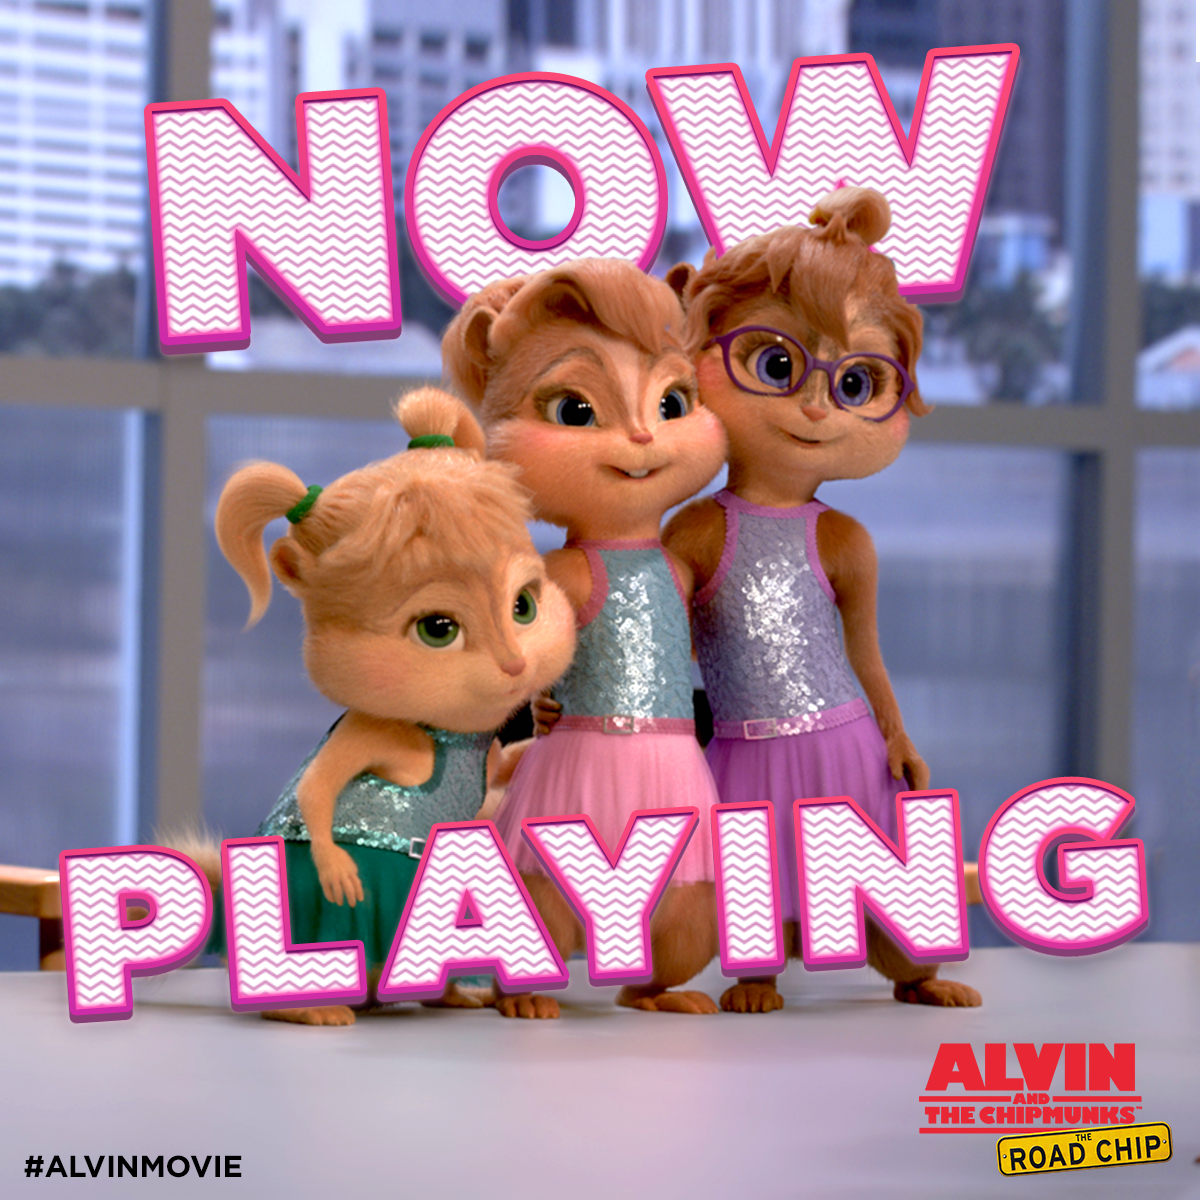 alvin movies on twitter quotround up the squad and see alvin